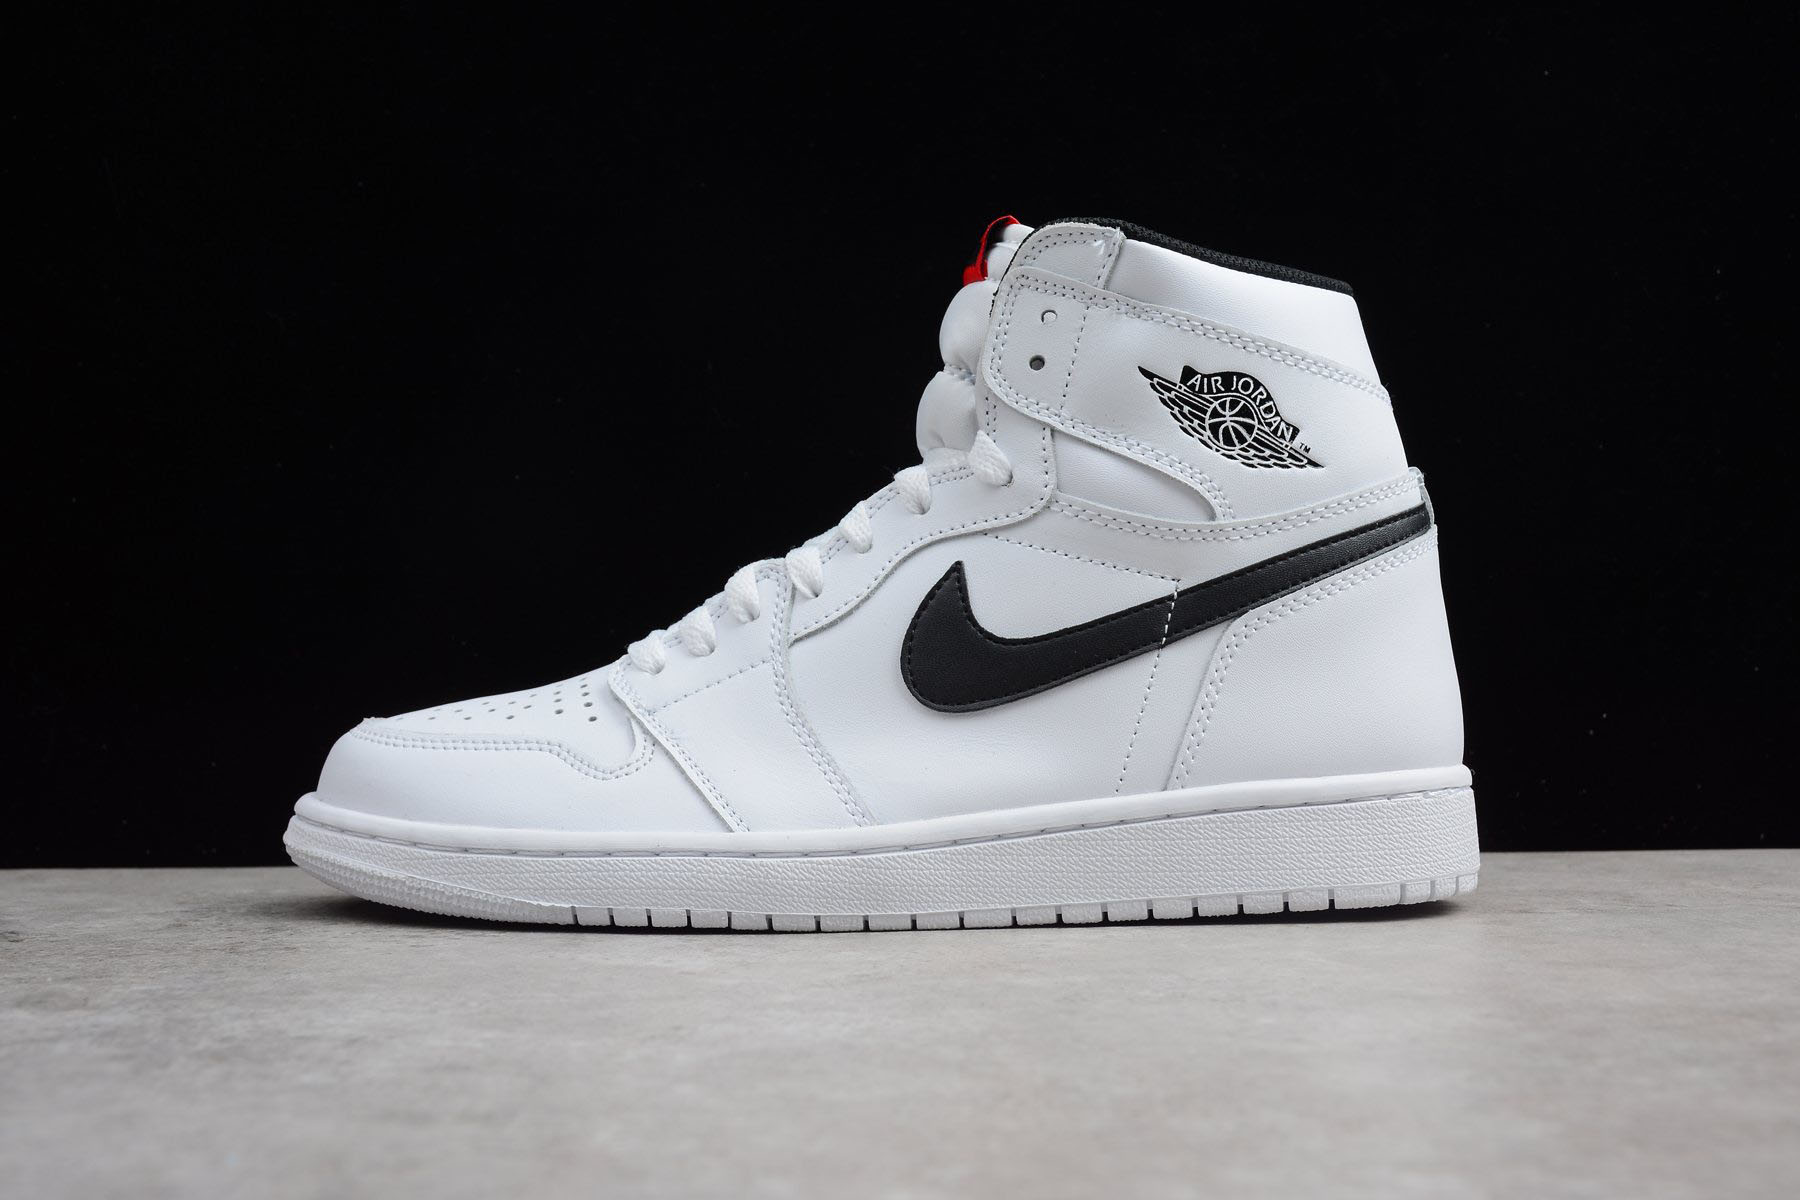 Air Jordan 1 Retro High OG Yin Yang White/Black-White 555088-102